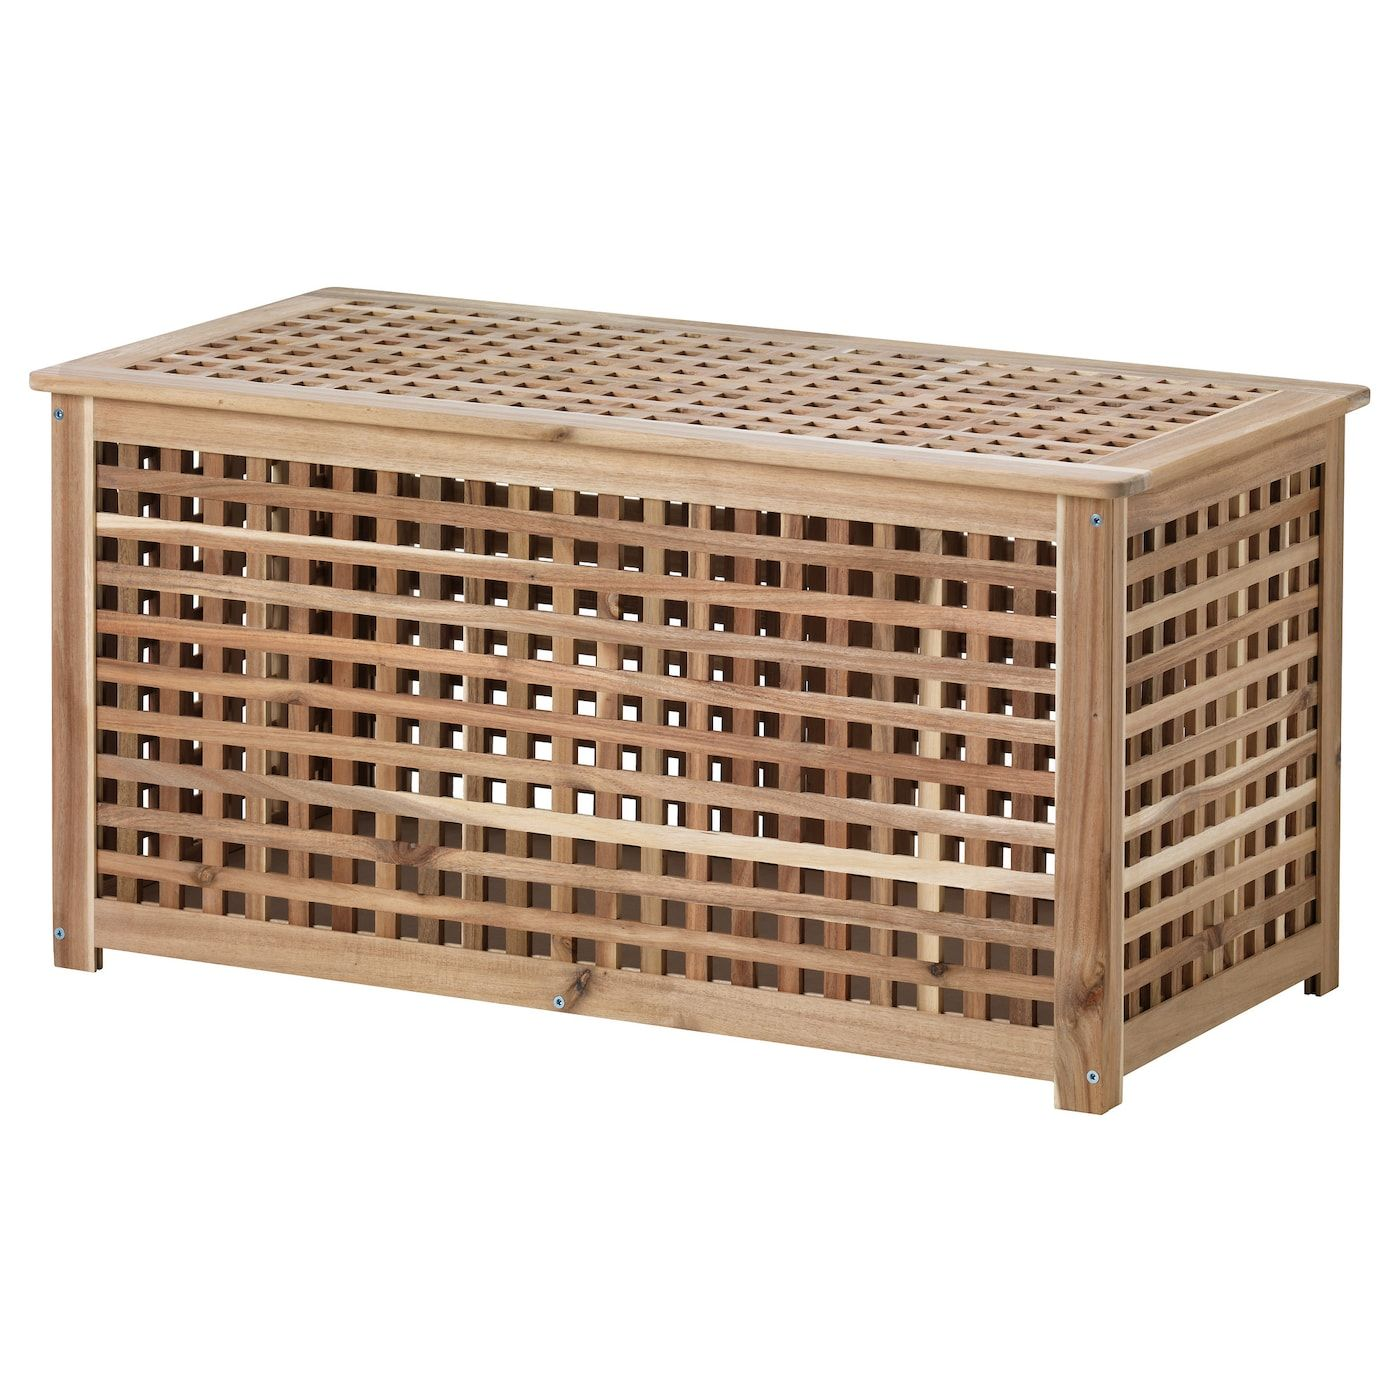 Hol Storage Table Acacia 98x50 Cm Ikea In 2021 Table Storage Storage Footstool Wicker Side Table [ 1400 x 1400 Pixel ]